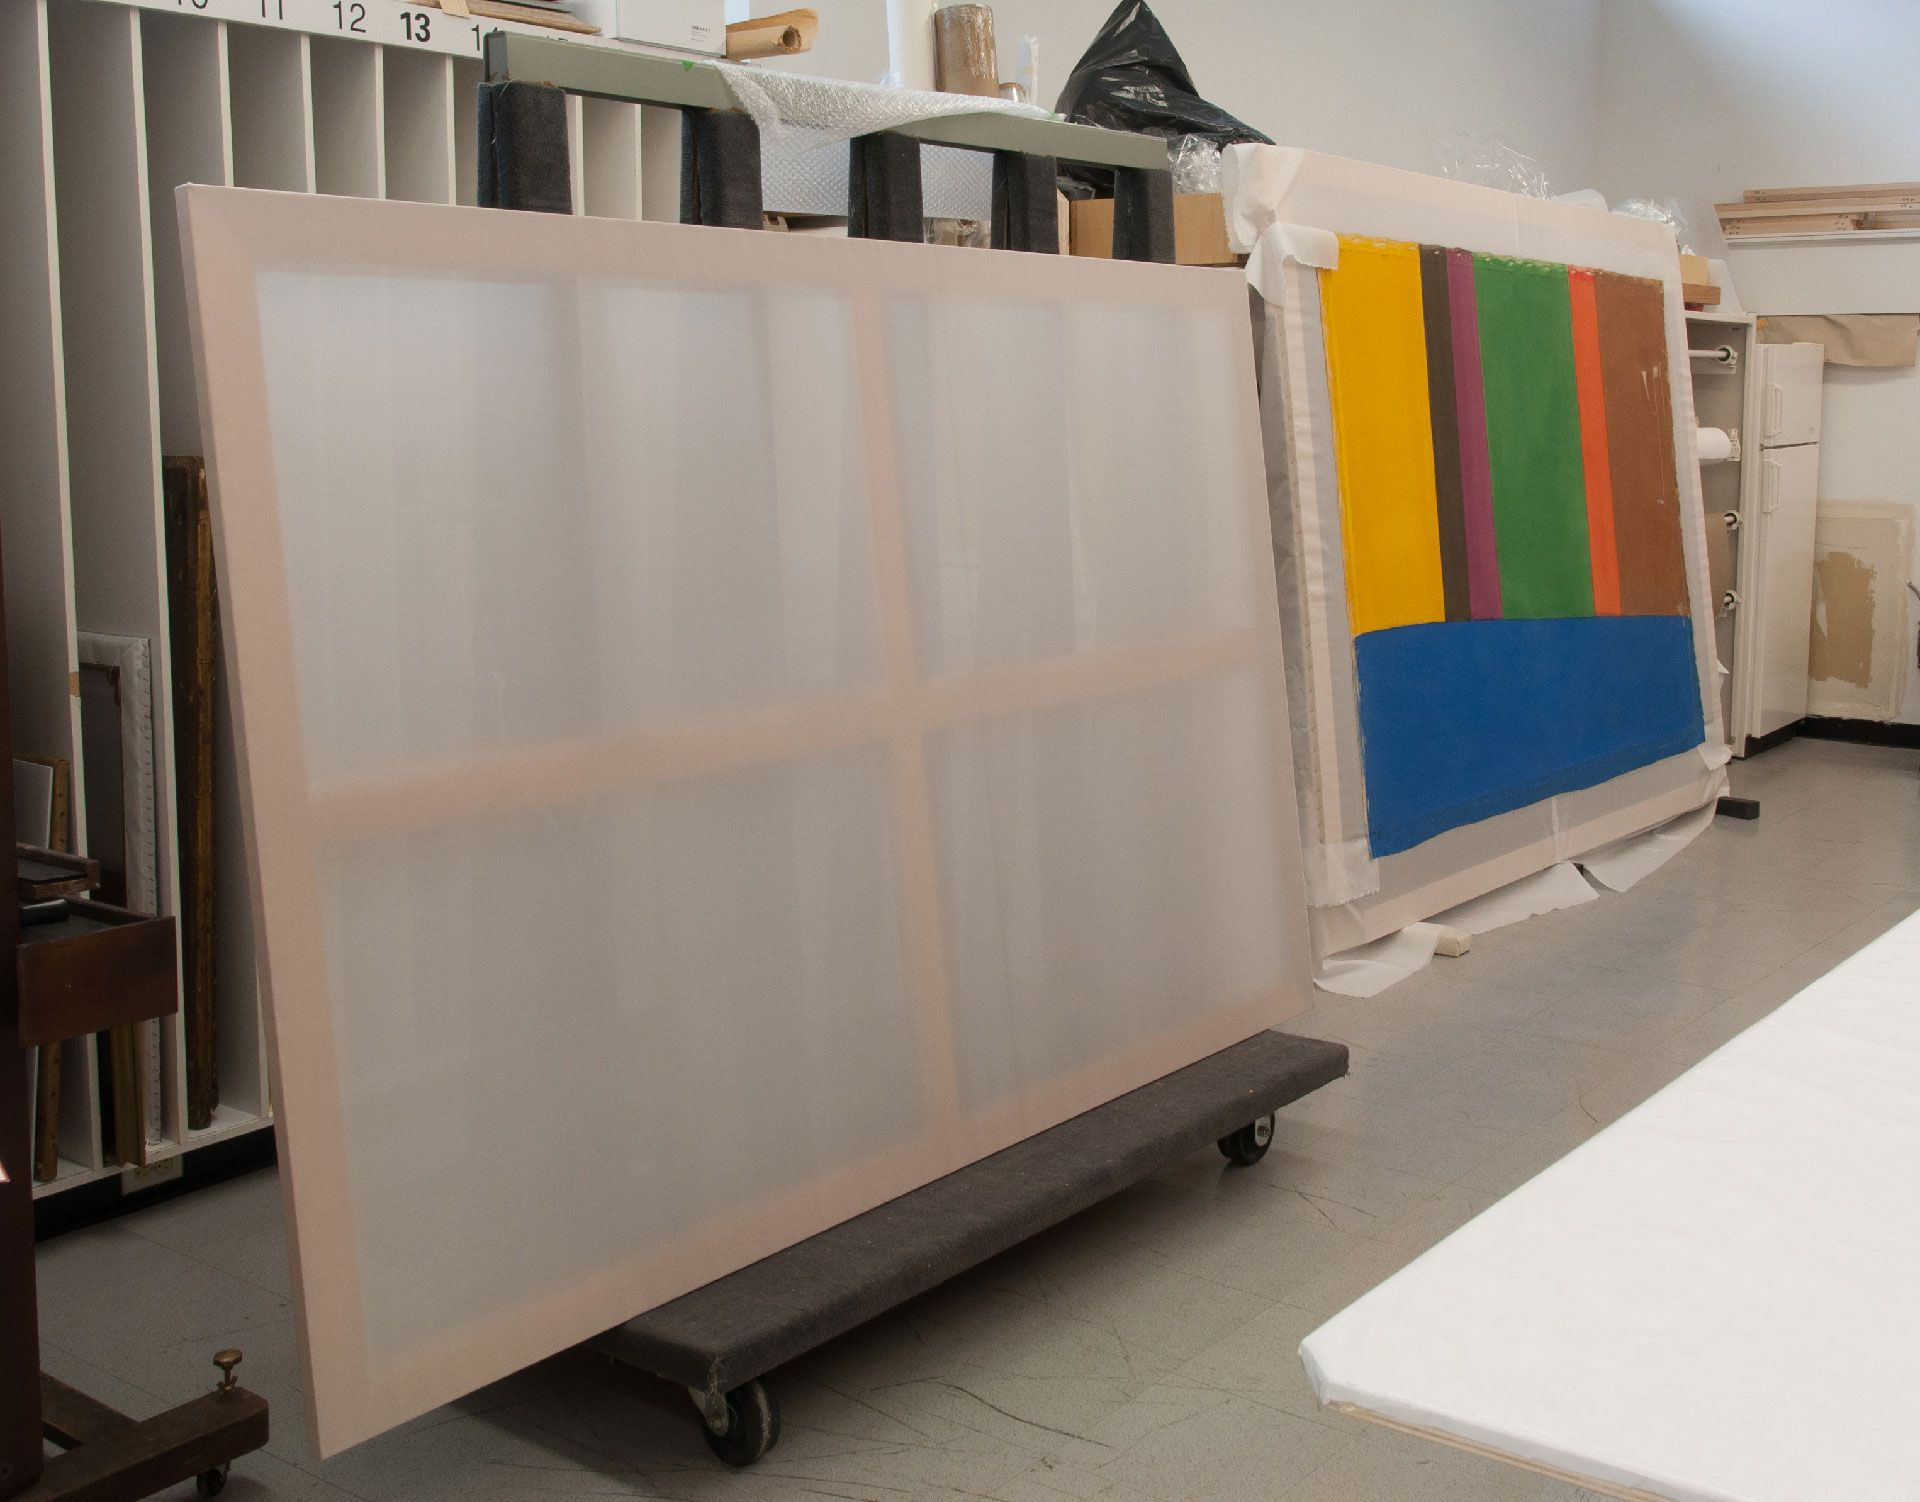 Prior to restretching the flattened painting (right), the original stretcher (left) was cleaned and repaired and covered with a polyester fabric (dry lining) to provide additional support to the painting.